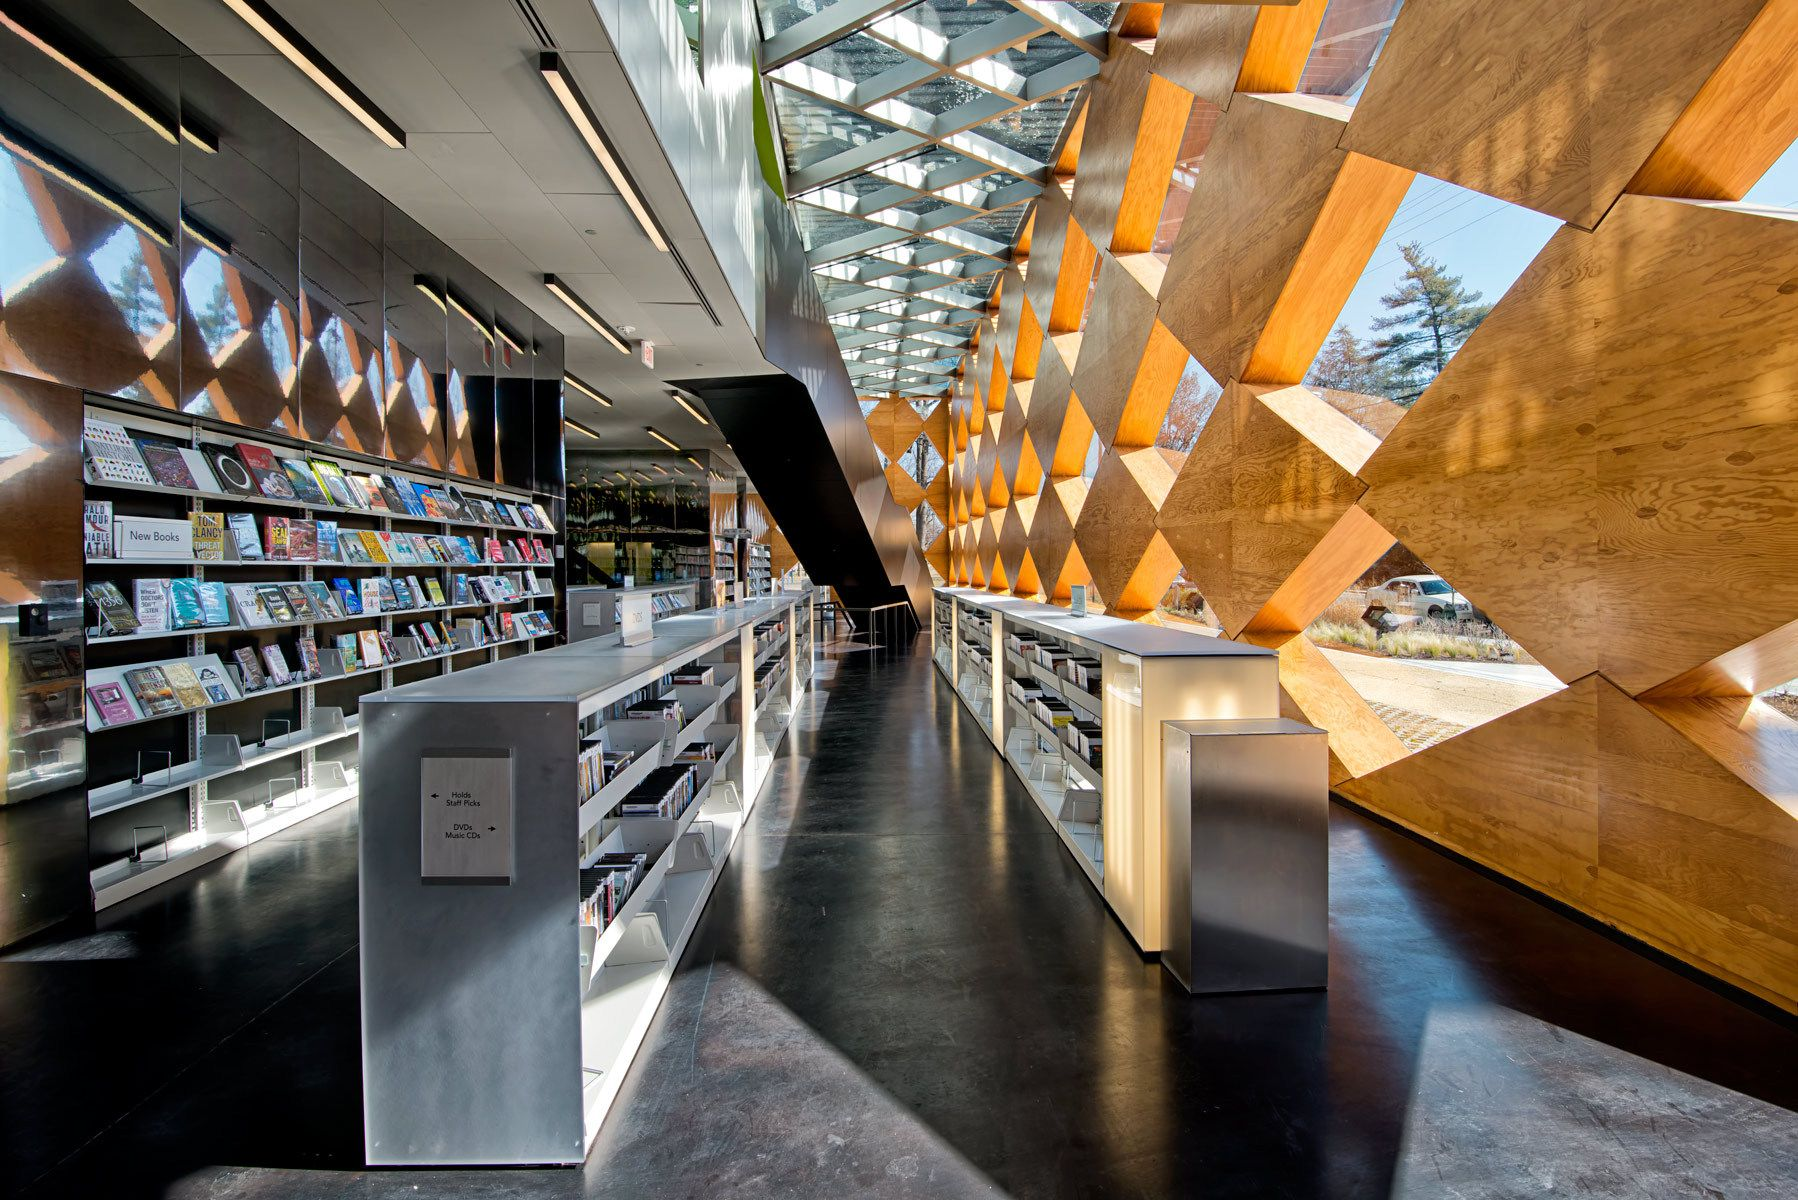 Francis A. Gregory LibraryWashington, DCArchitect: David Adjaye